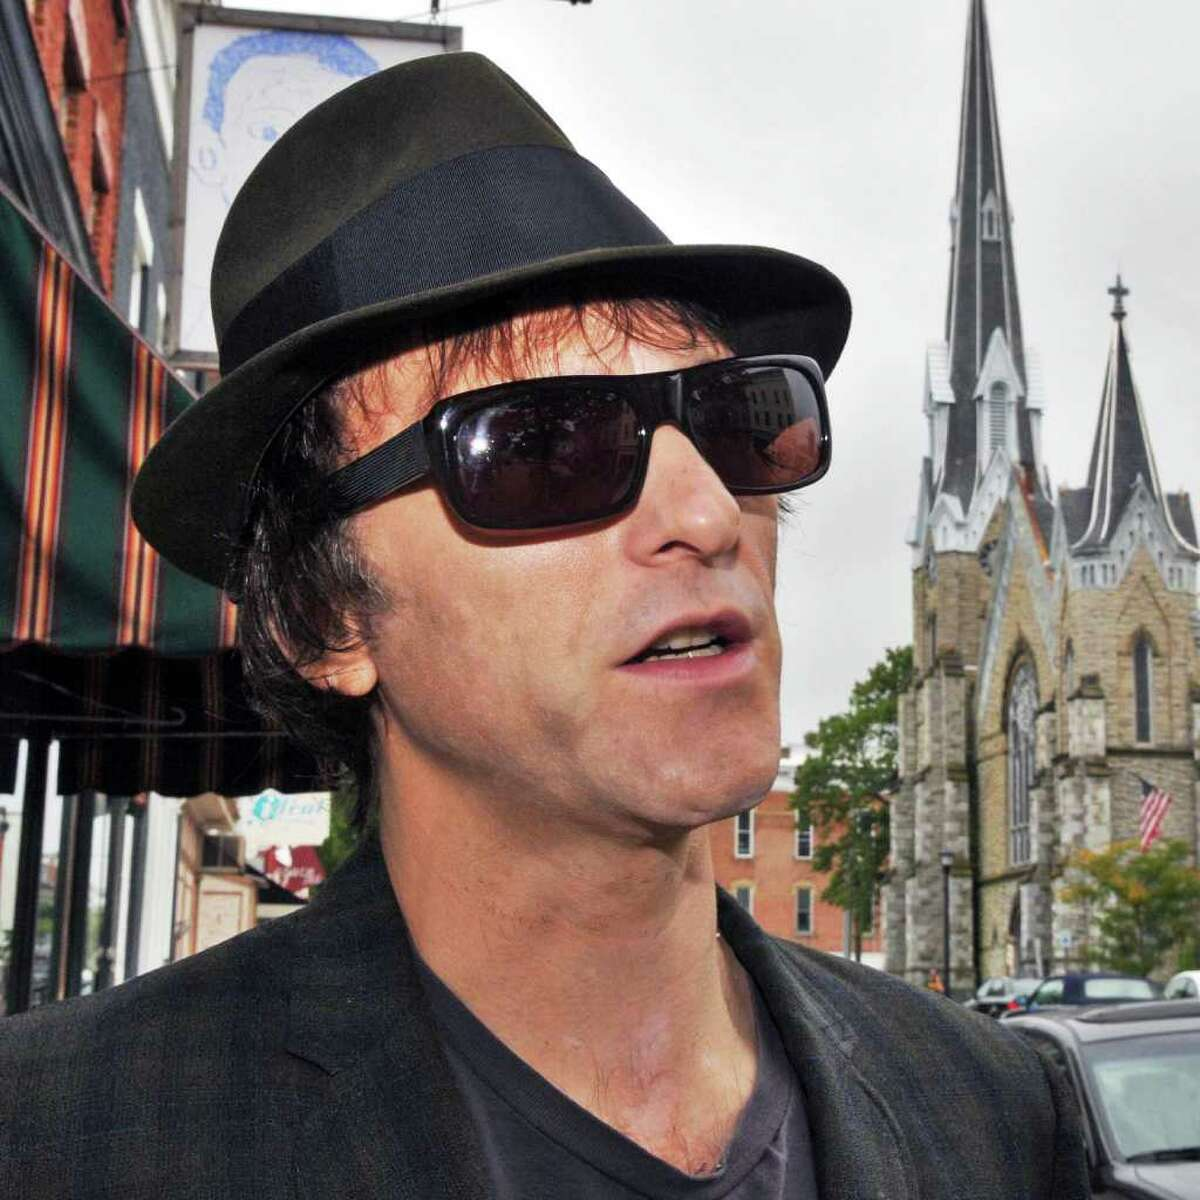 Tommy Stinson, a new resident of Hudson and former bassist in The Replacements, takes a stroll along Warren Street in Hudson this past September (Friday Sept. 23, 2011) before hitting the road on his latest assignment. Stinson is now playing with Guns n Roses on its worldwide tour. (John Carl D'Annibale / Times Union)